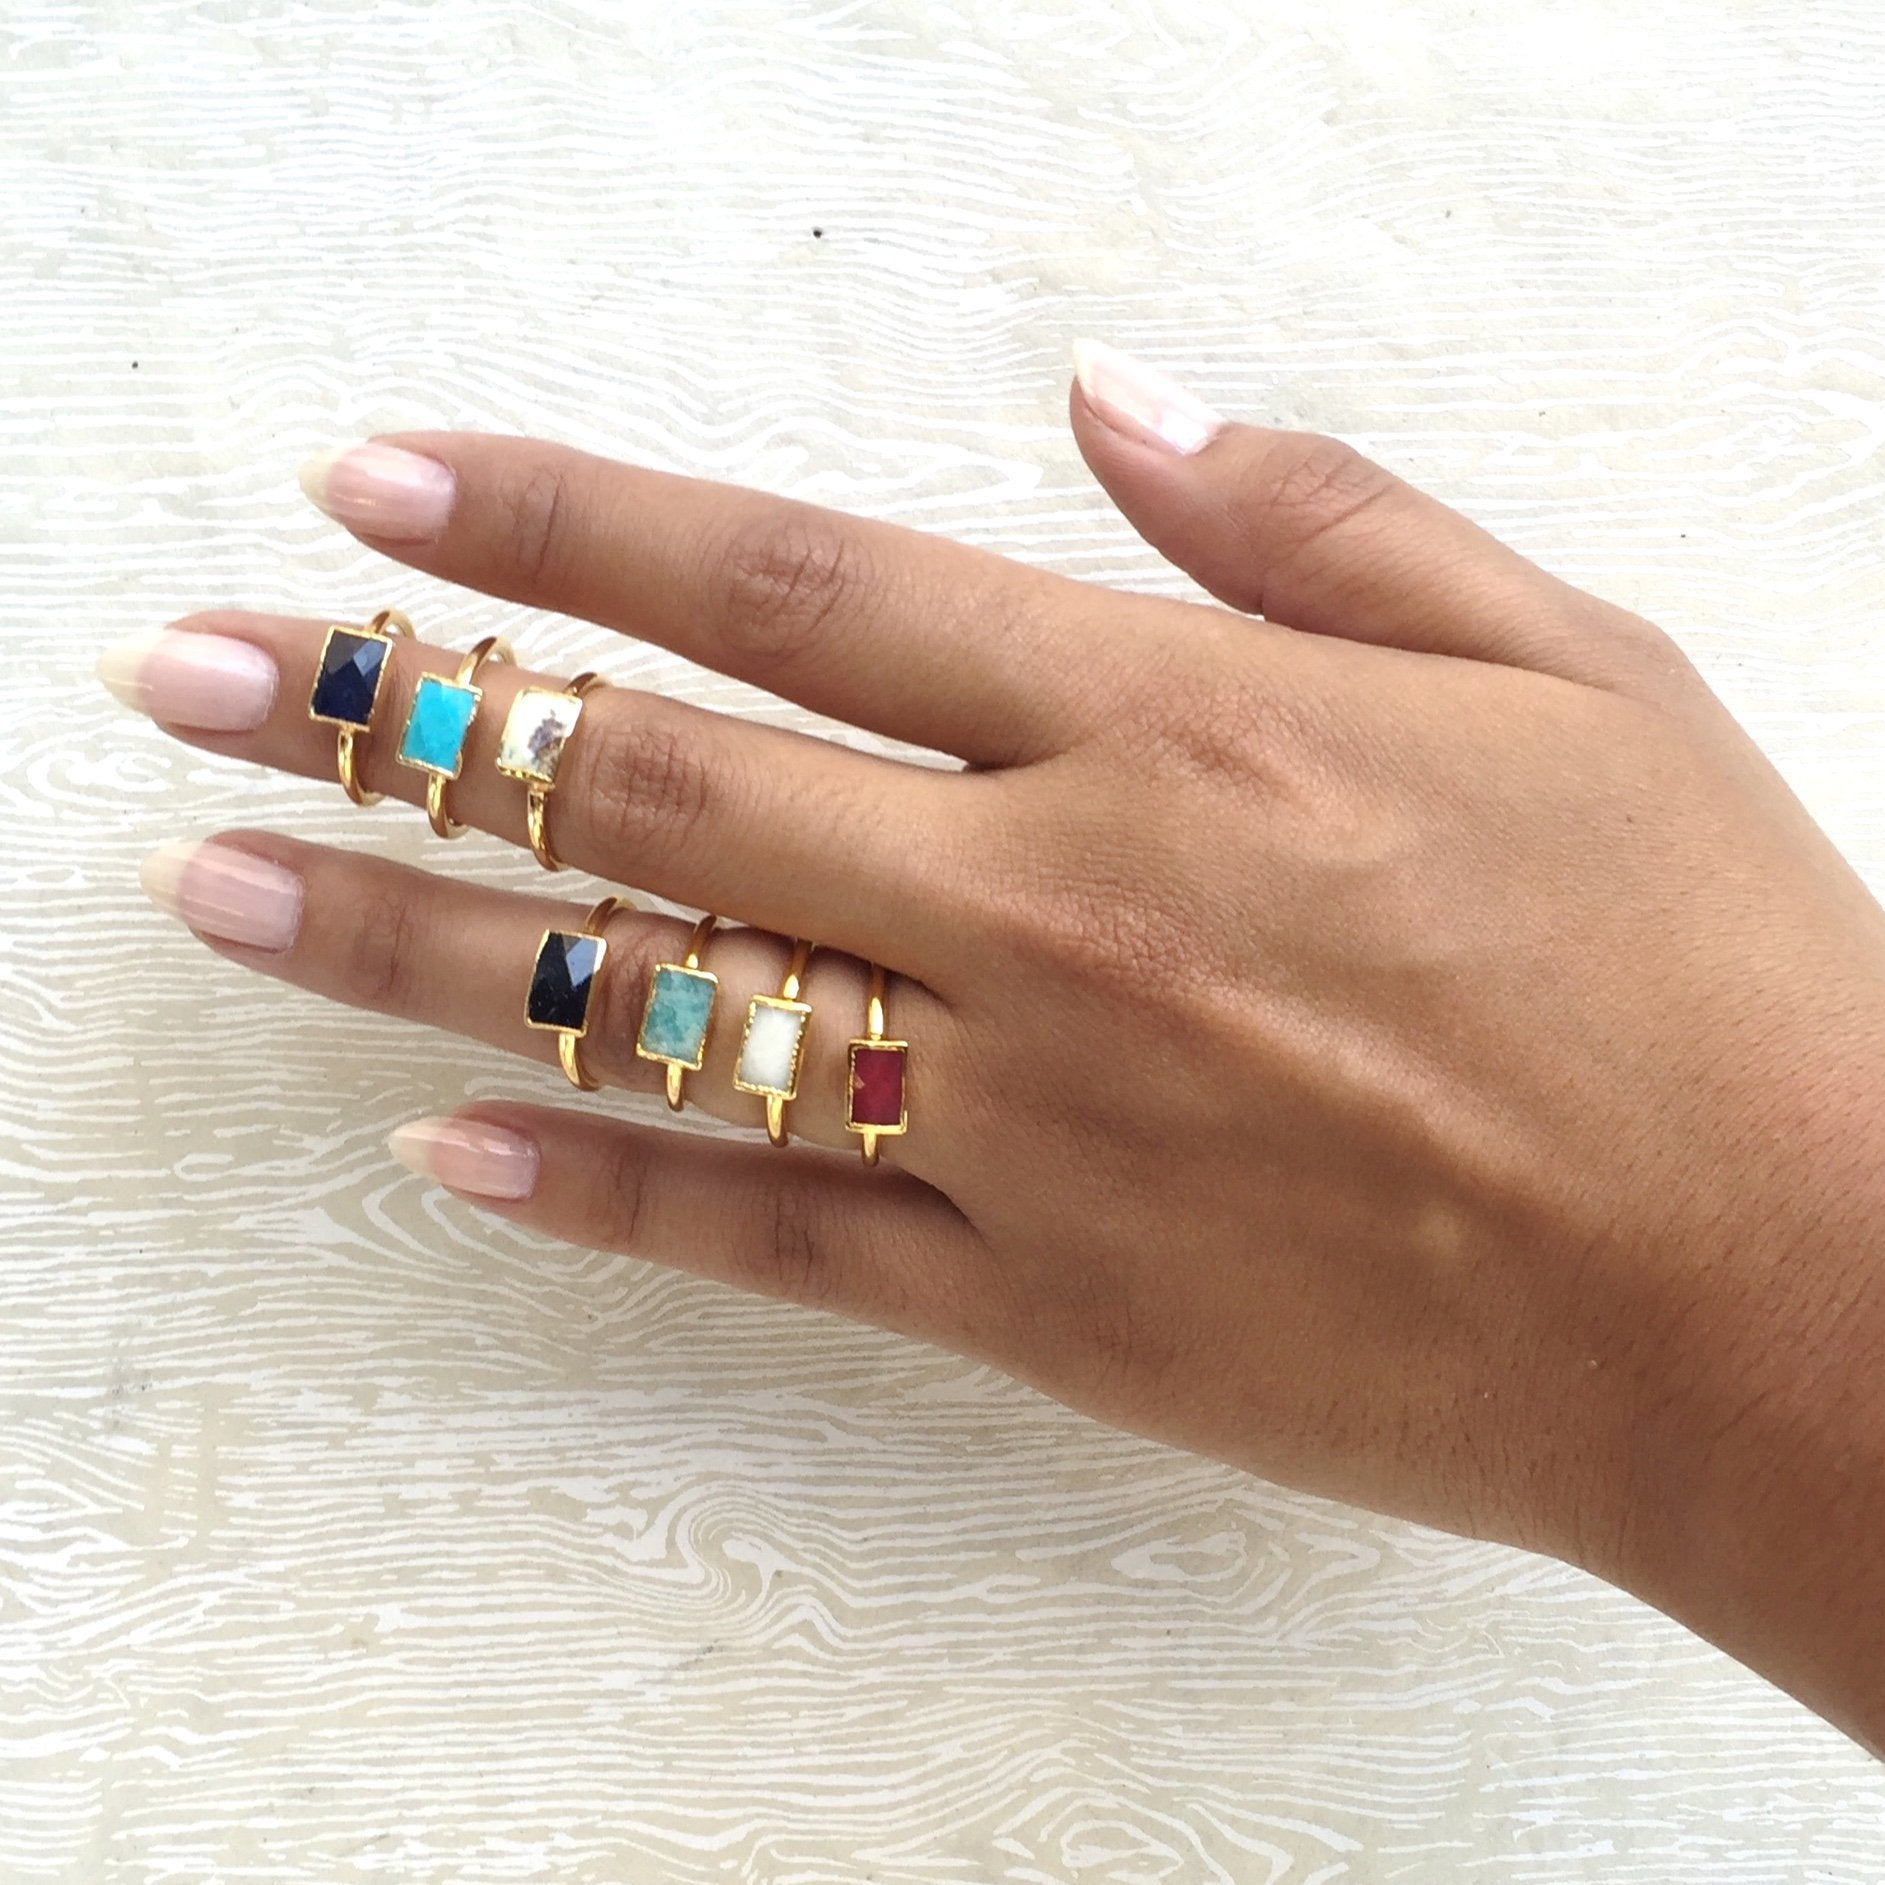 semiprecious stone rectangular stacking rings on hand